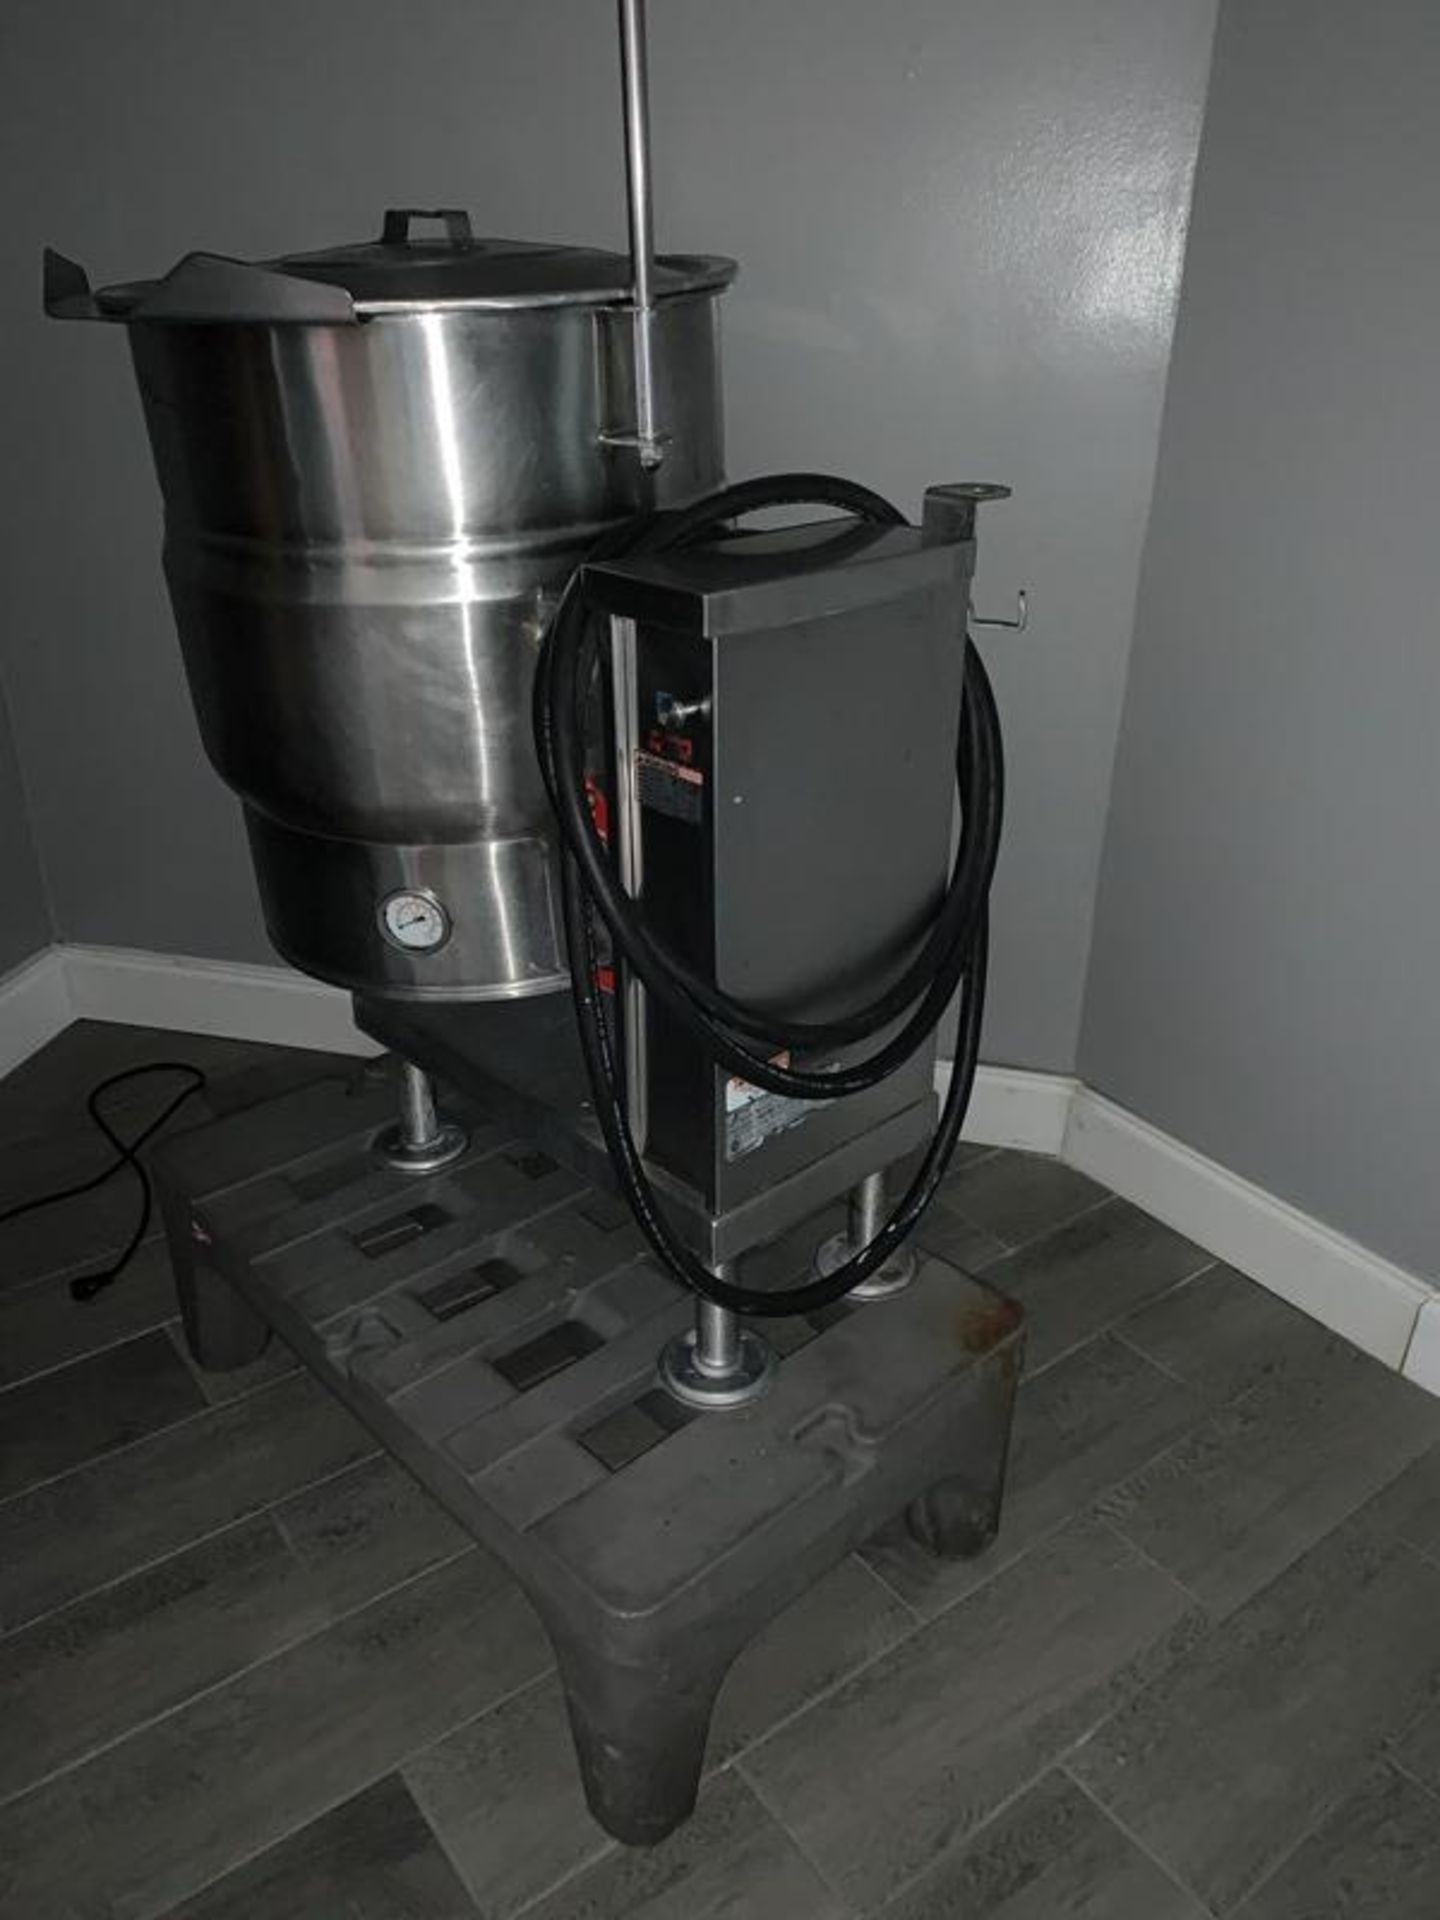 Lot 18 - Vulcan Mdl. VEC20T Self-Contained Kettle, 20 gallon, electric, 240 volts, Ser. #4595-12-0480, Nat'